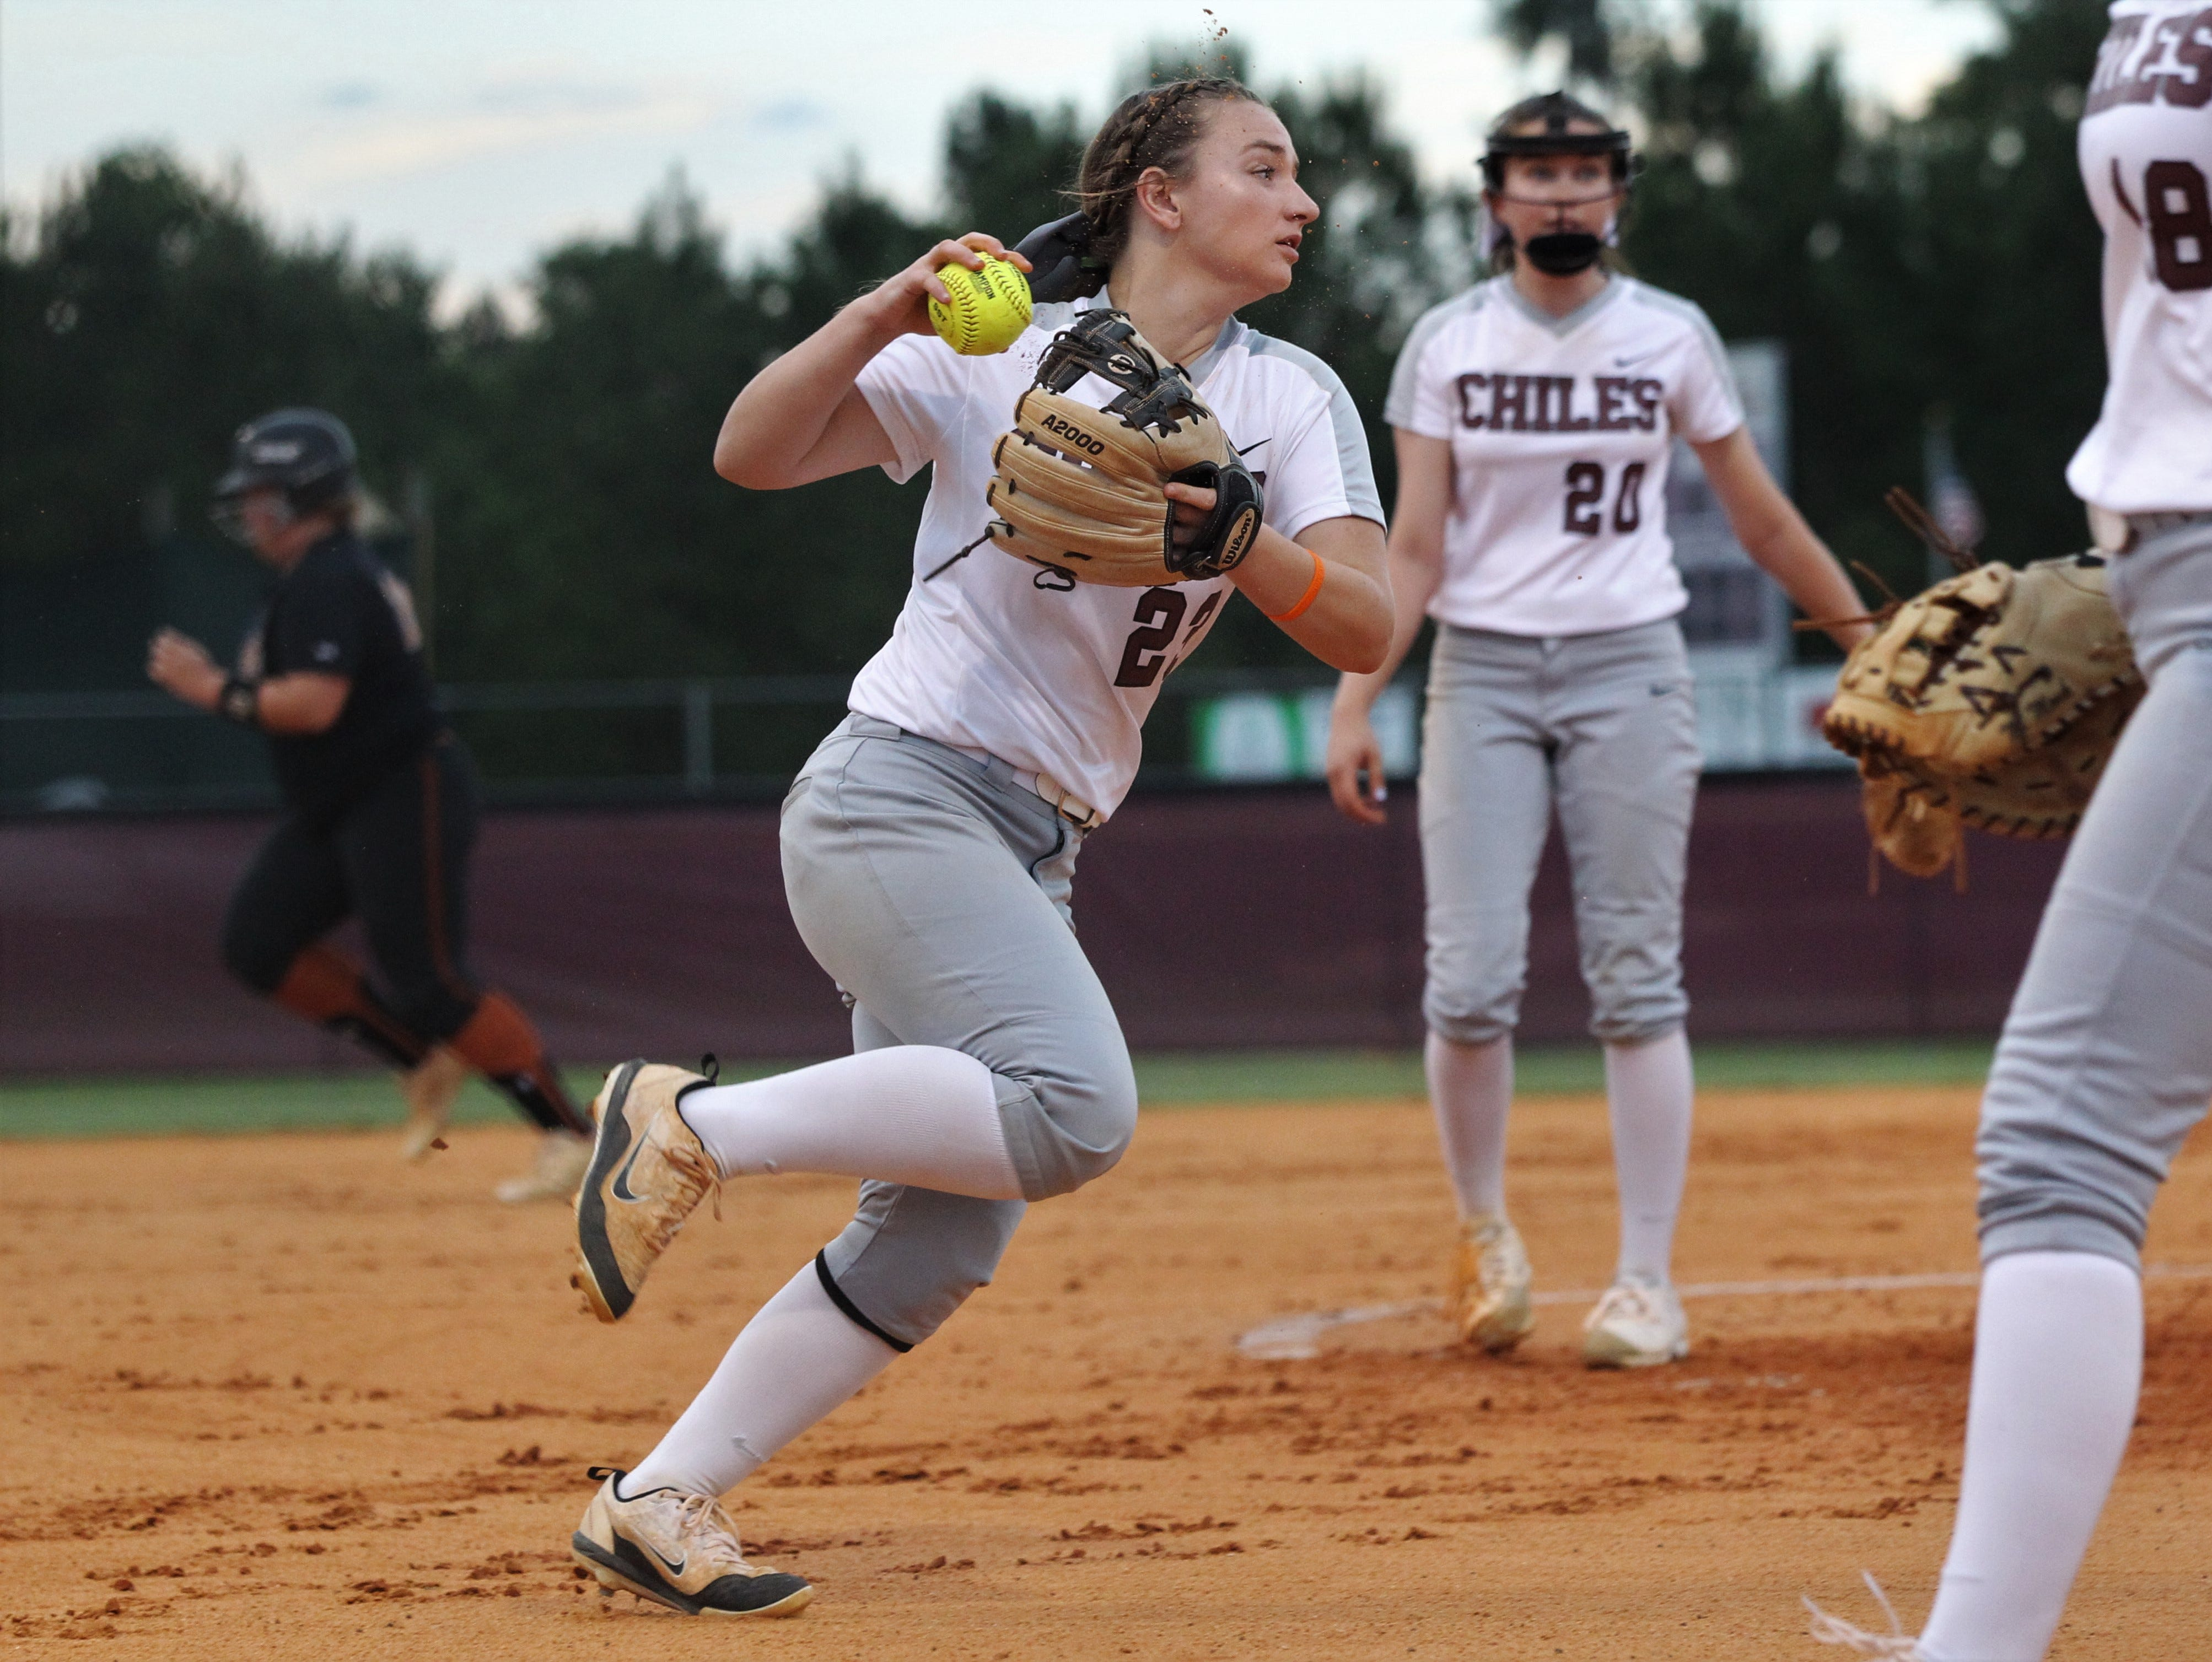 Chiles third baseman Sierra Jevyak fields a bunt on the run as the Timberwolves beat Atlantic Coast 6-4 during a Region 1-8A quarterfinal softball game on Wednesday, May 8, 2019.